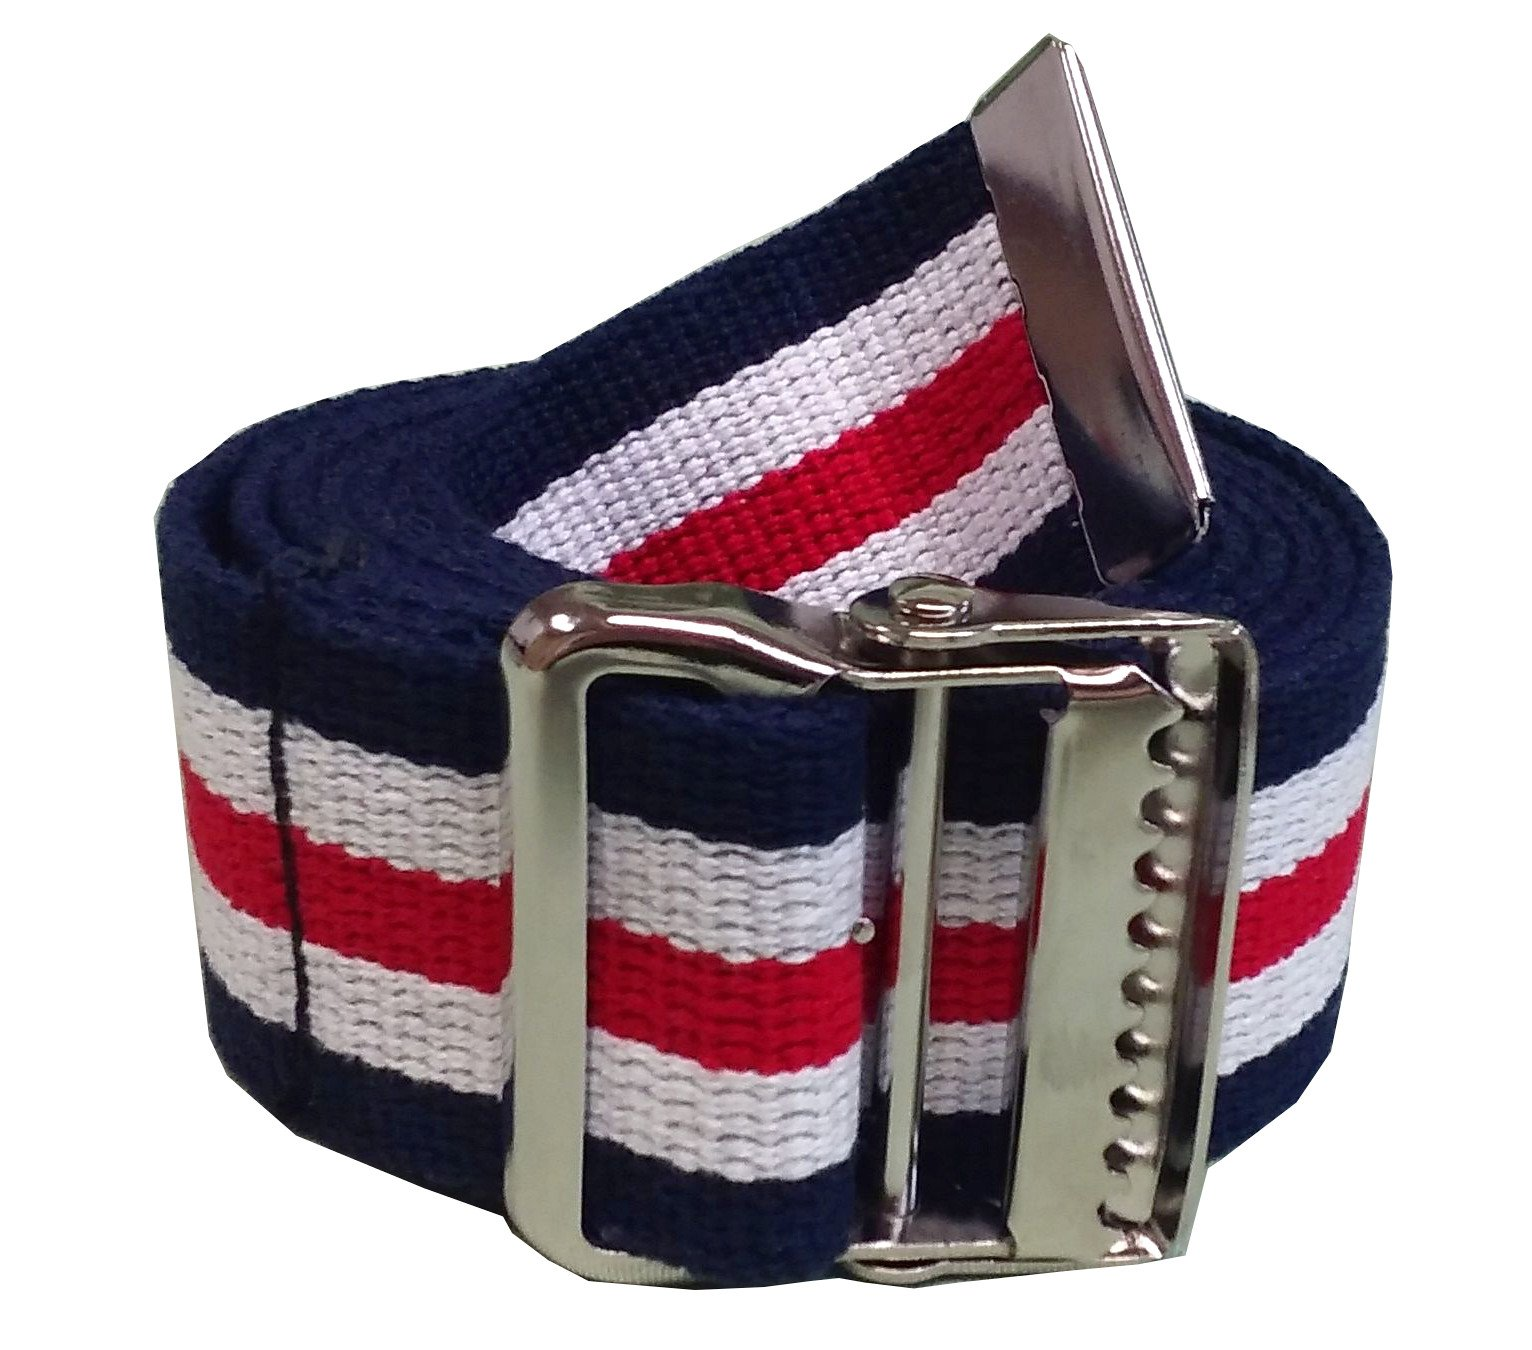 JDM Medical Cotton Gait Belt with Metal Buckle, Red White and Blue (72'')